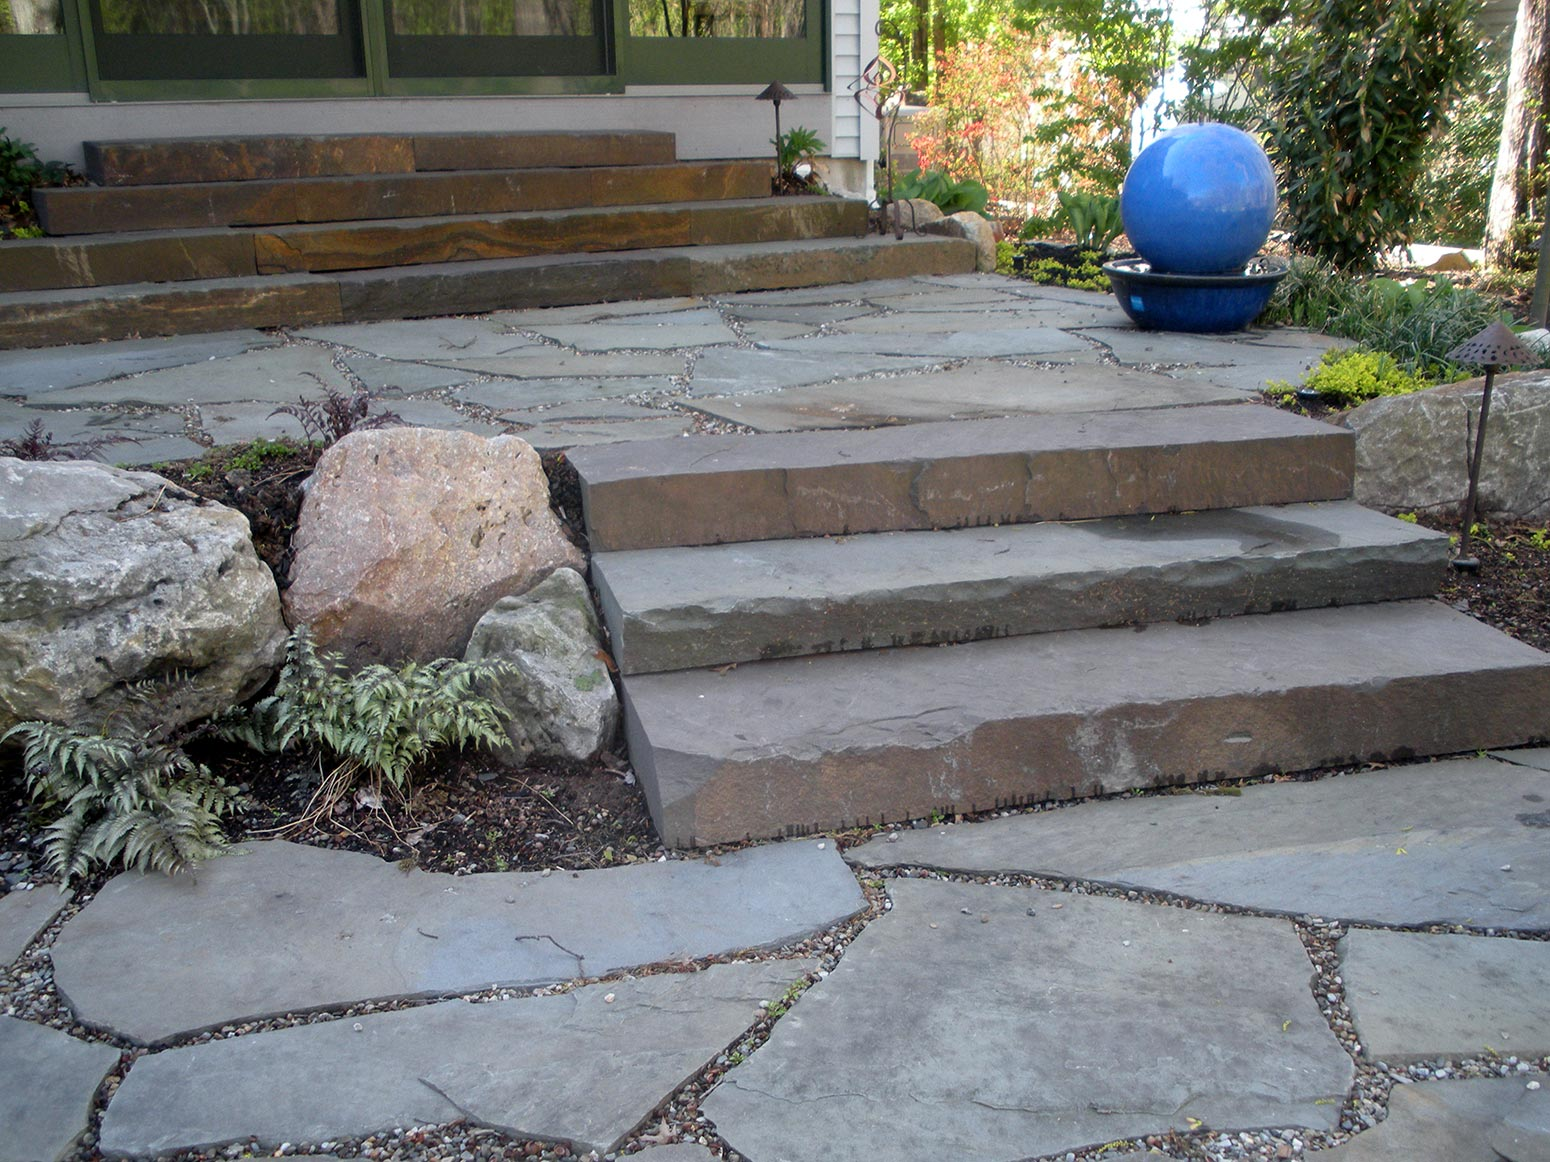 Natural Stone, EP Henry Paver Walkways, Brick Patio ... on Rock Patio Designs  id=42343